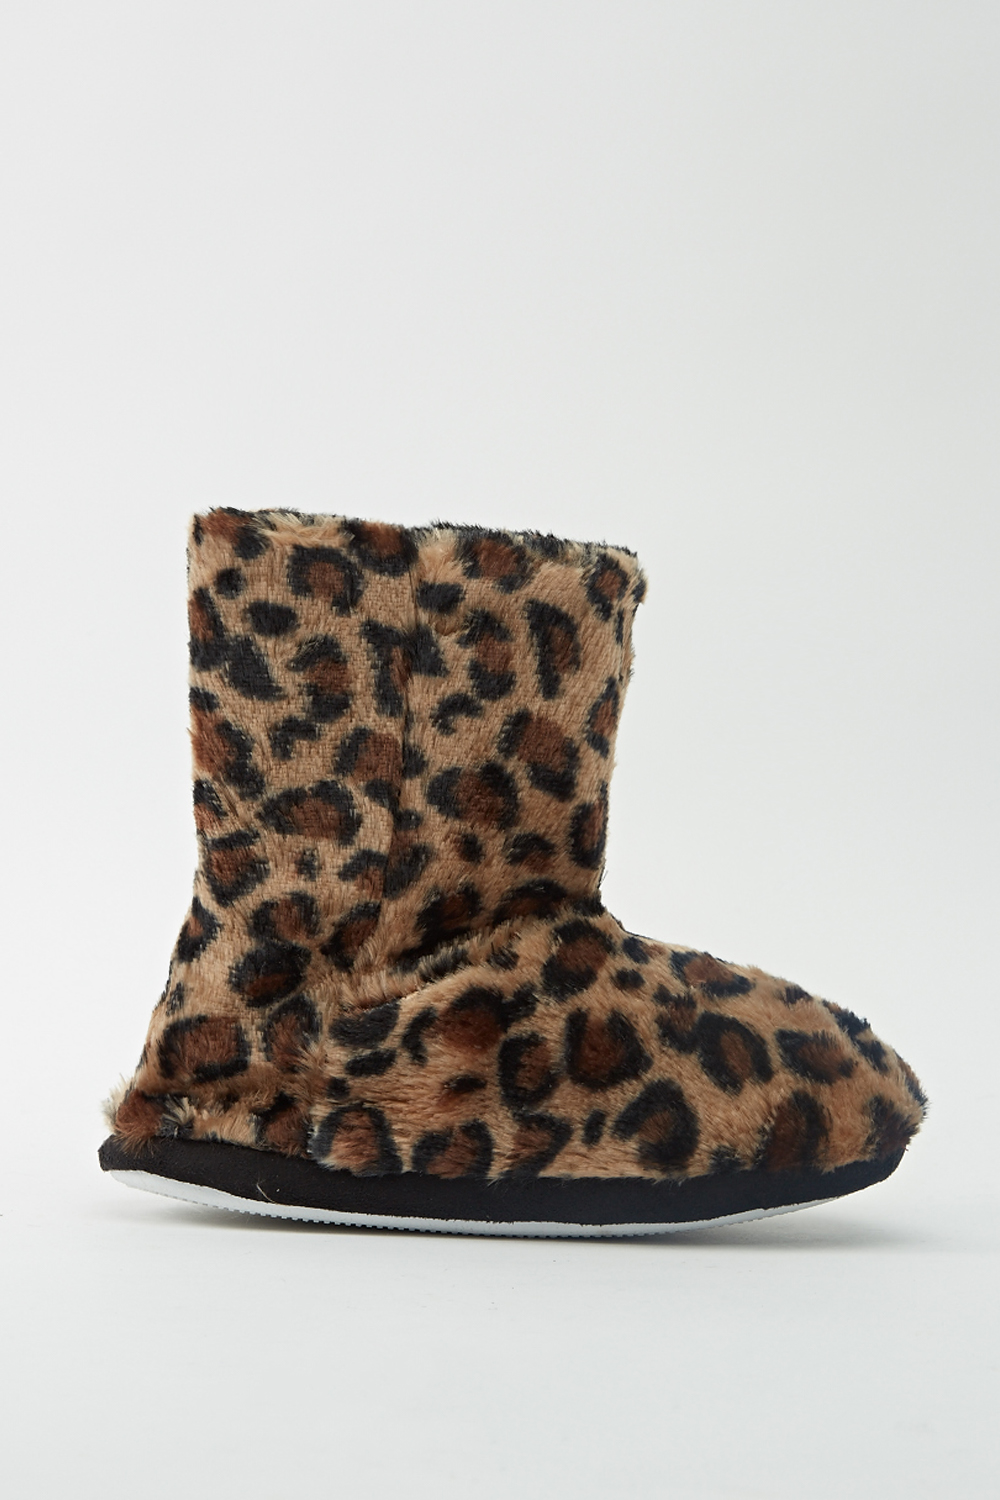 Ugg slippers animal print womens ralph lauren slippers now at usd 70 00 stylight lyst ugg dakota leopard bow in brown ugg boots slippers unbeatable s mandm direct.